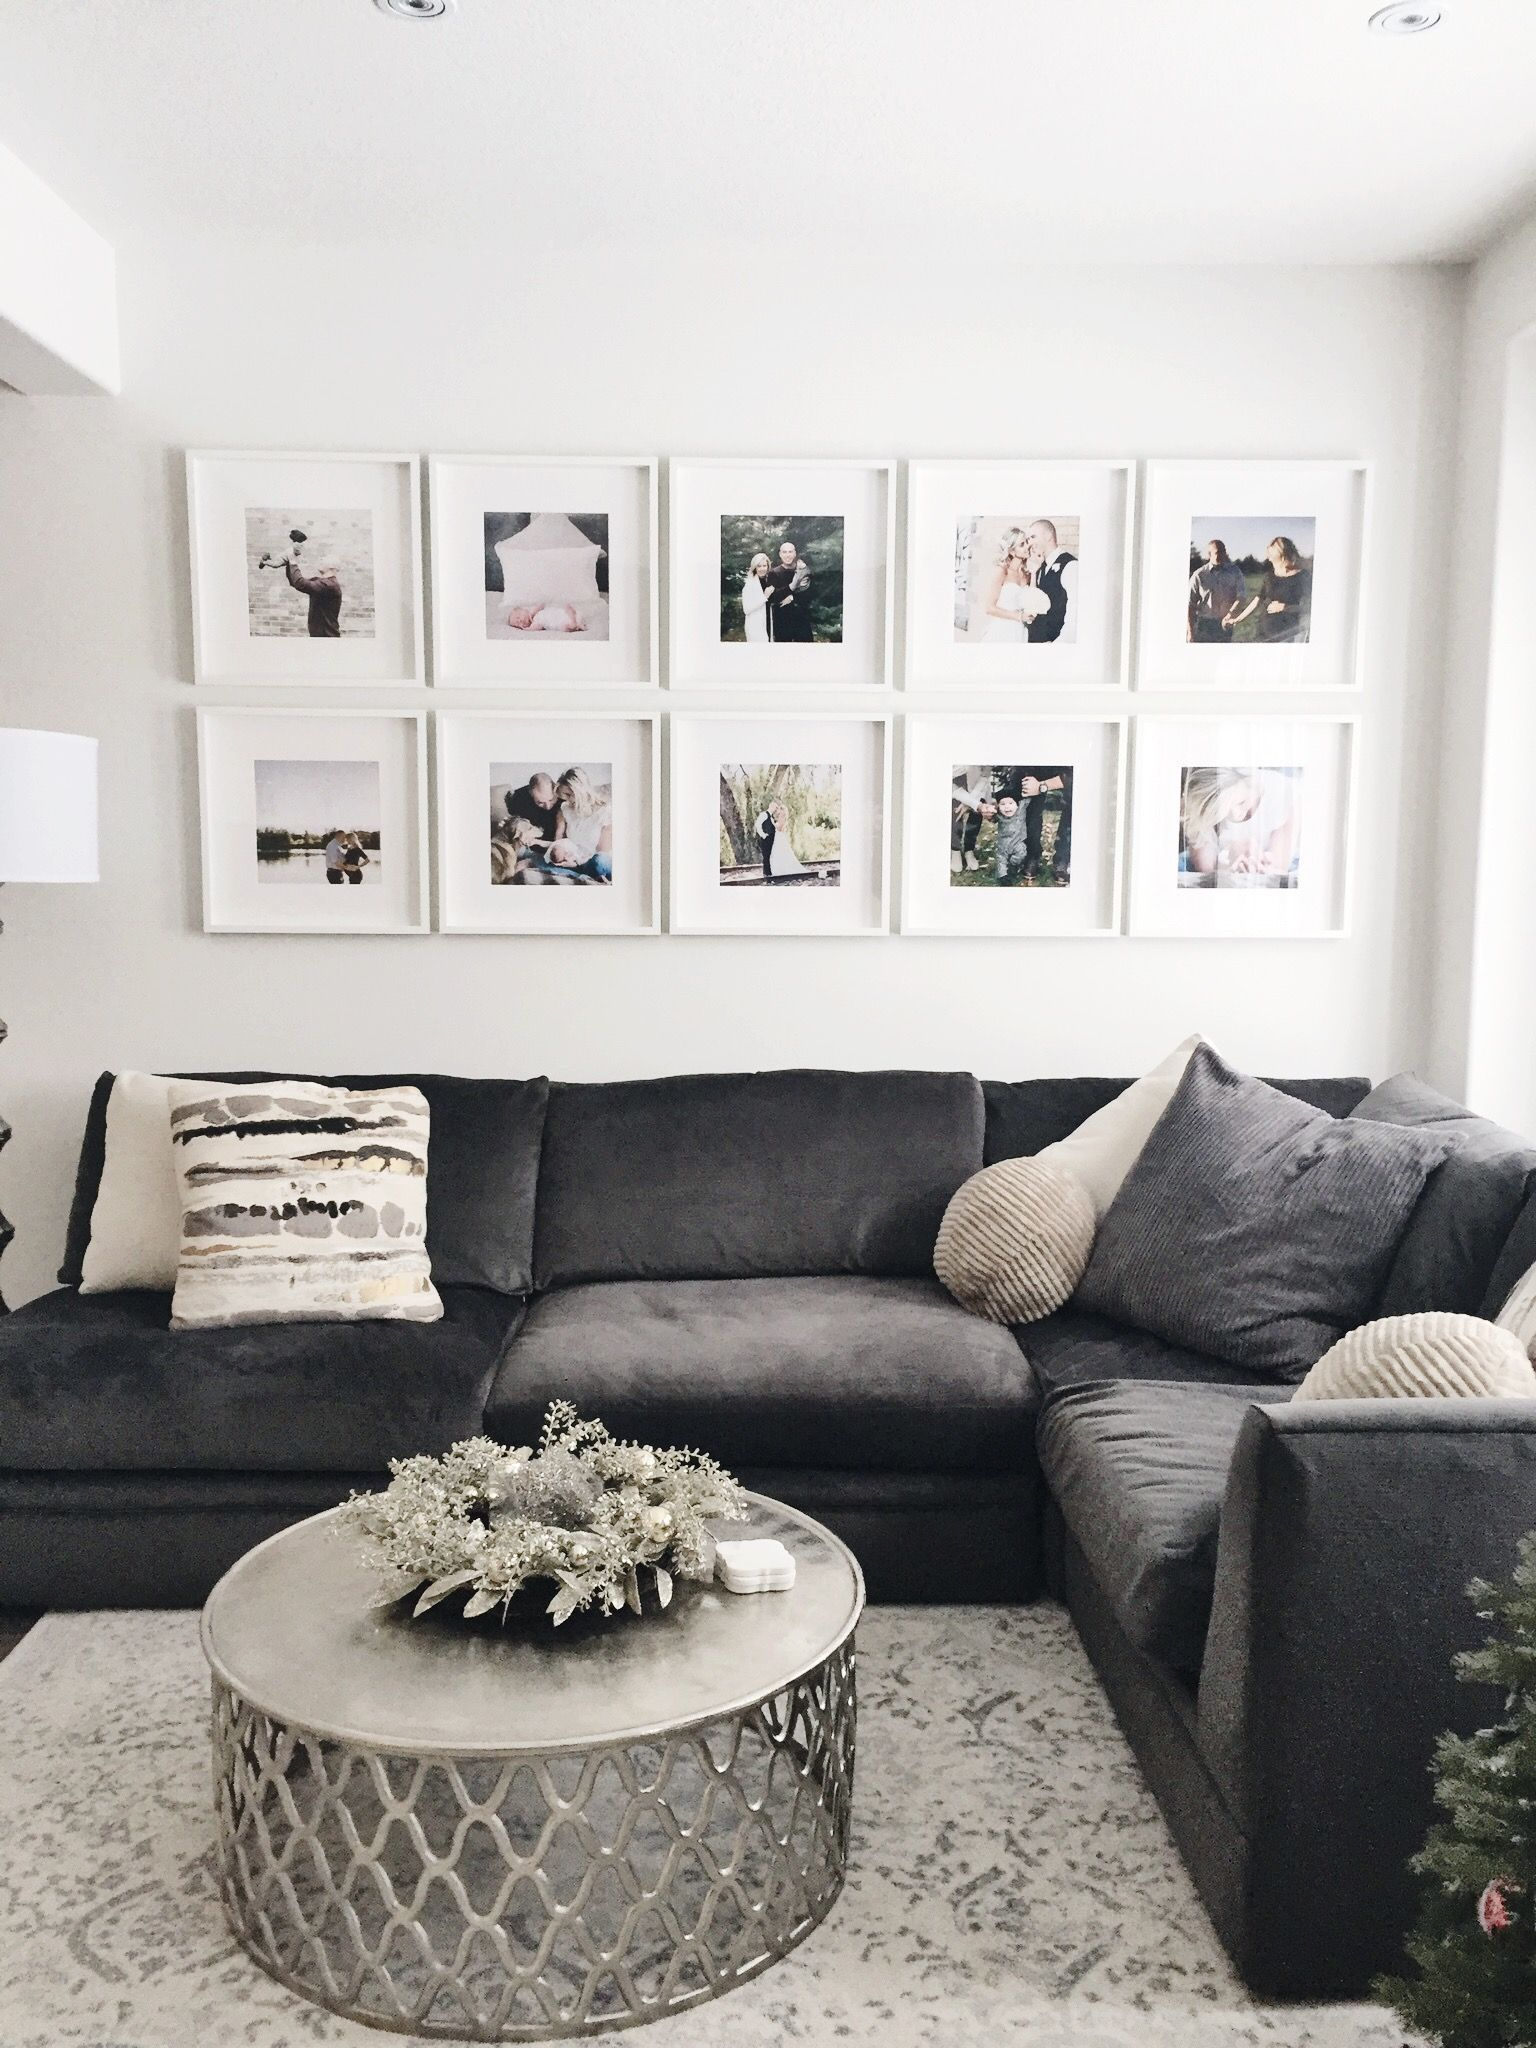 Ikea Wall Picture Frames For Living Room 2019 In 2020 Gallery Wall Living Room Home Living Room Couches Living Room #picture #frames #in #living #room